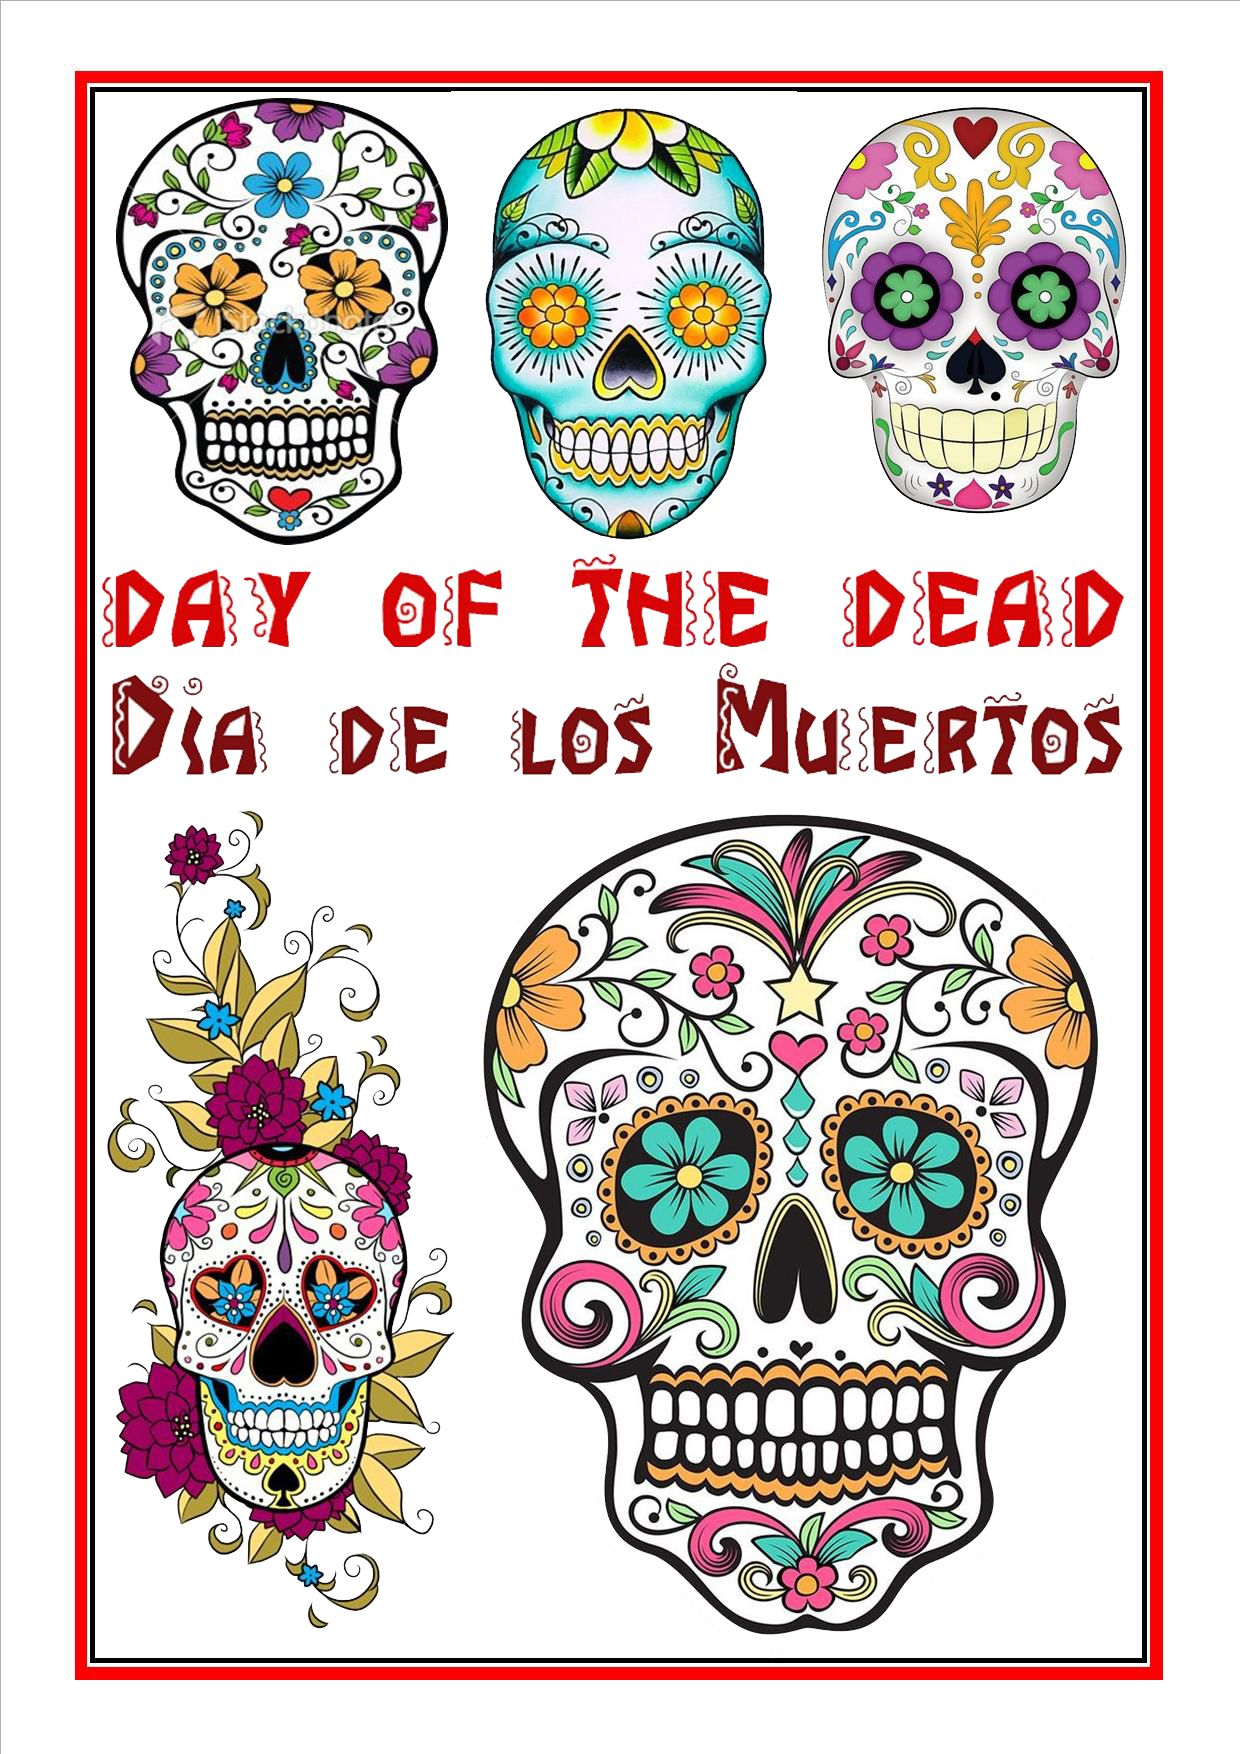 worksheet Day Of The Dead Worksheets day of the dead 2 resources and worksheets pinterest 2